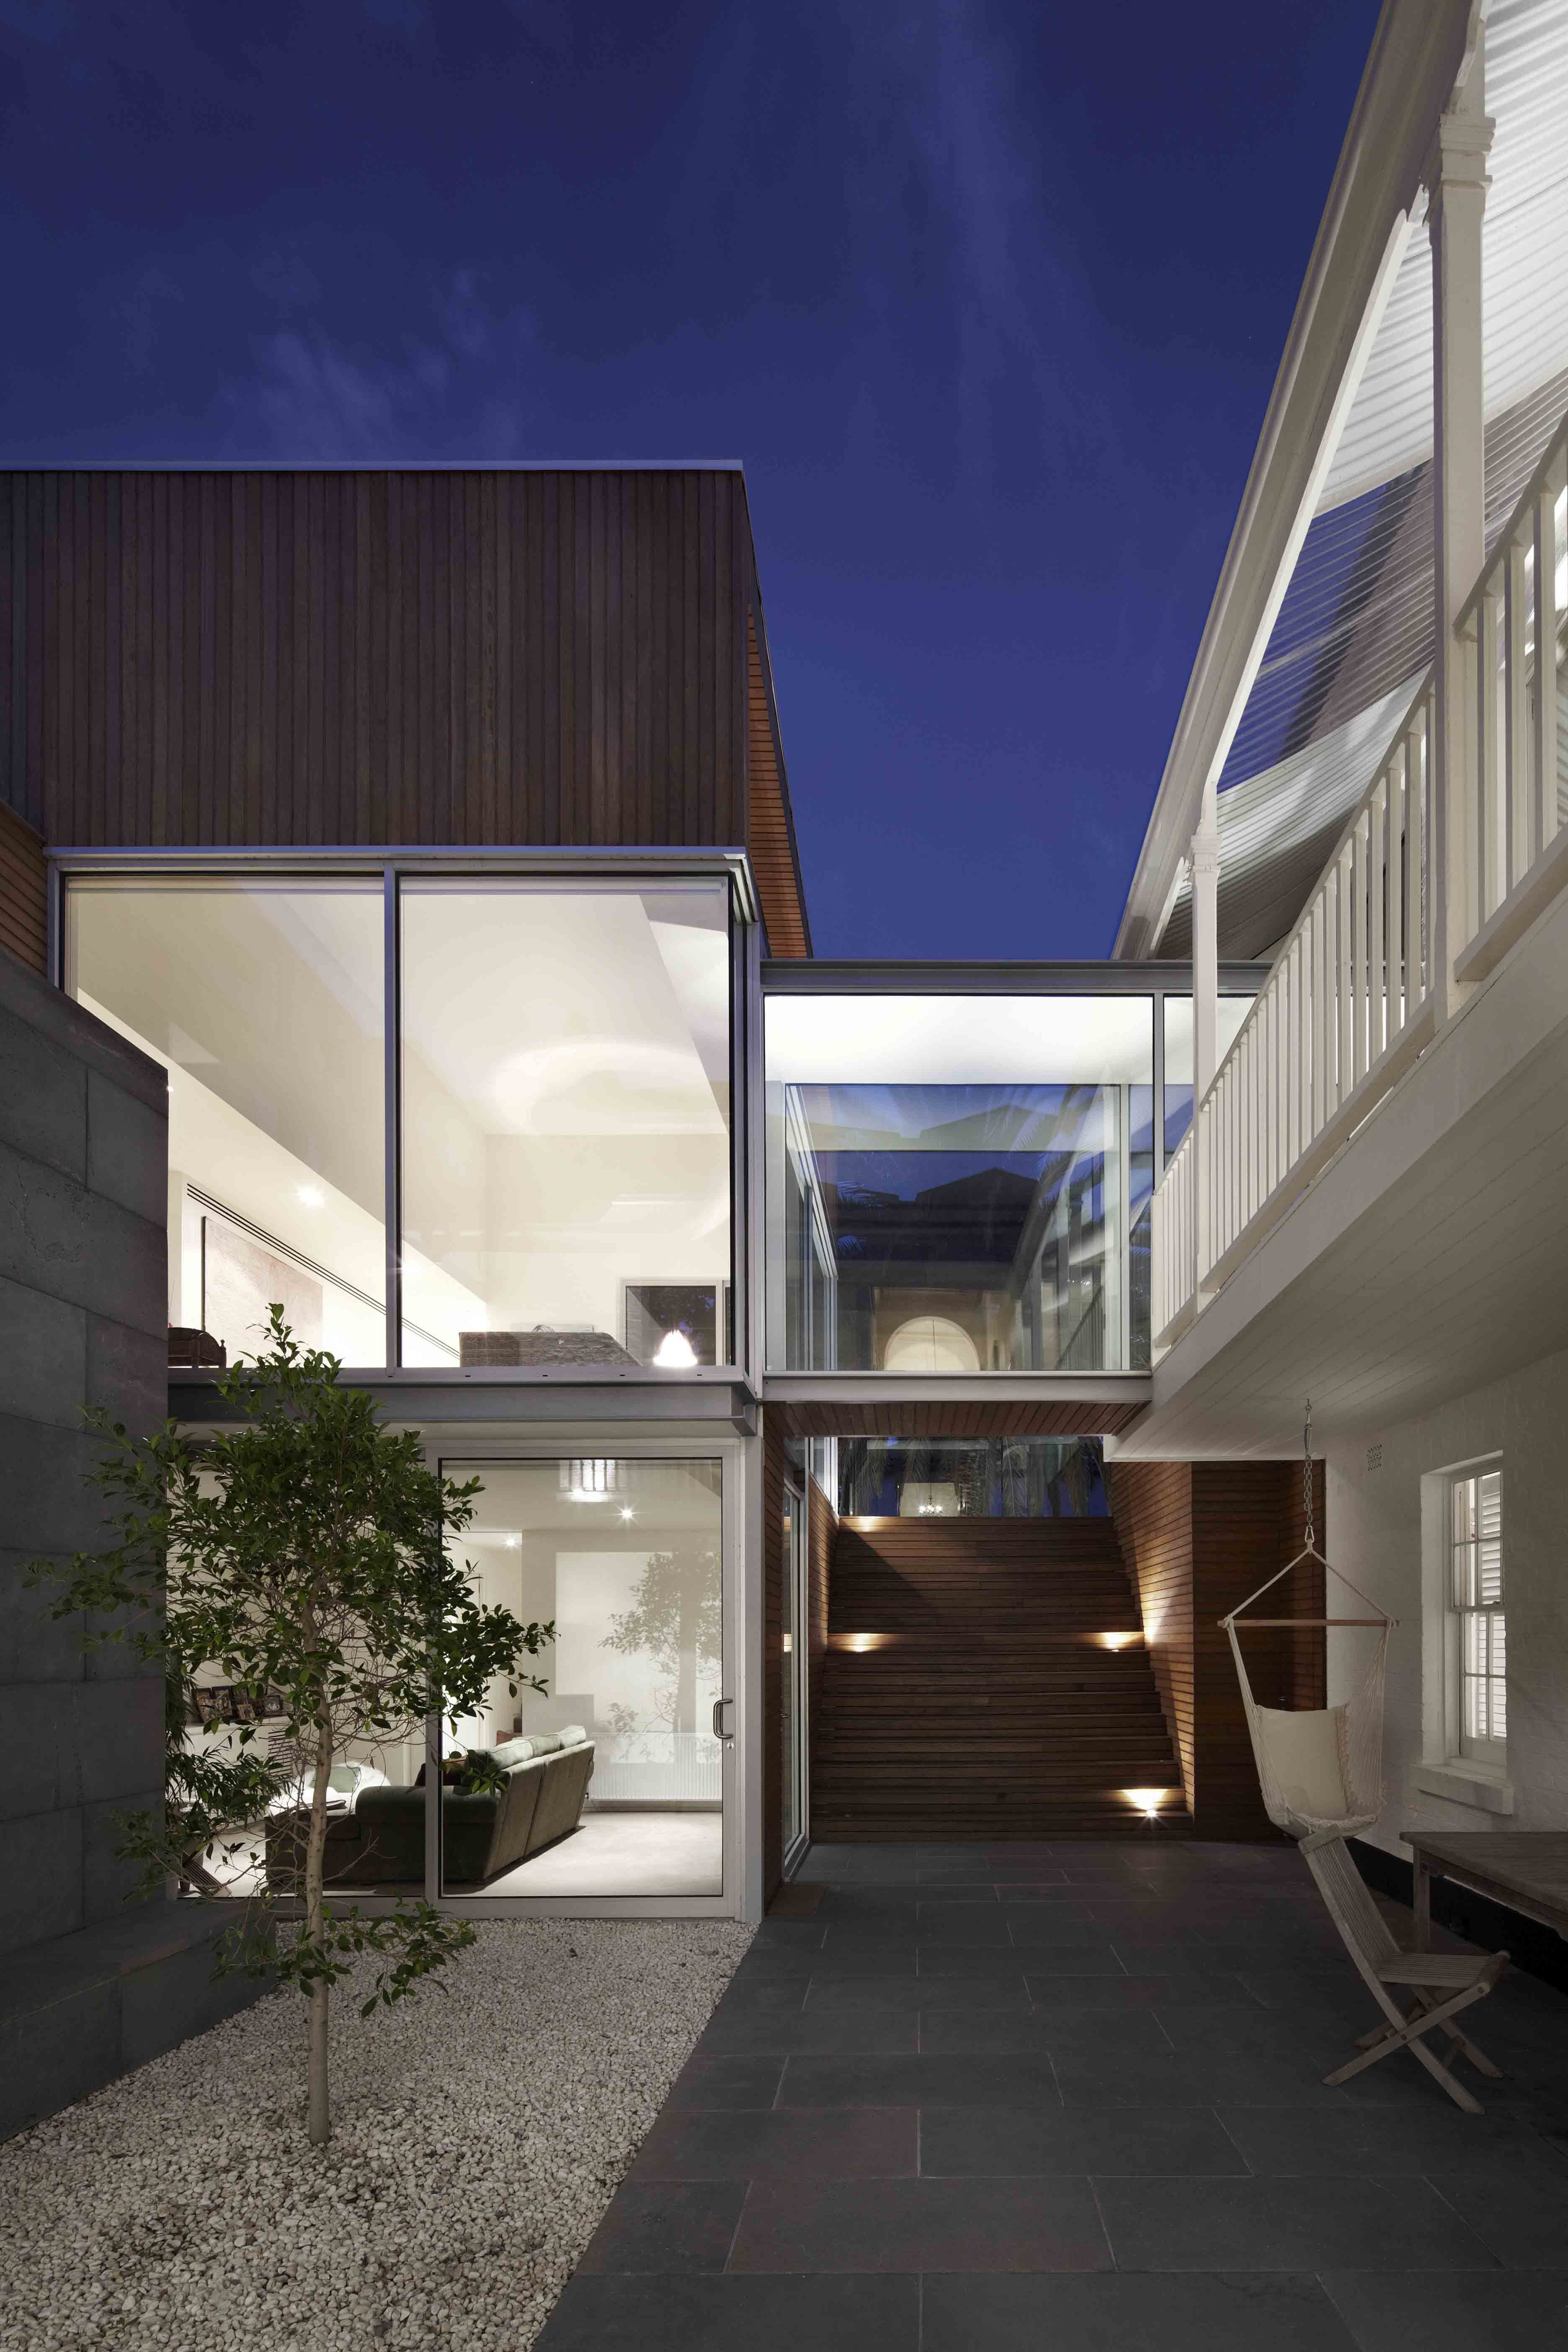 Lim House Coy Yiontis Architects Lim